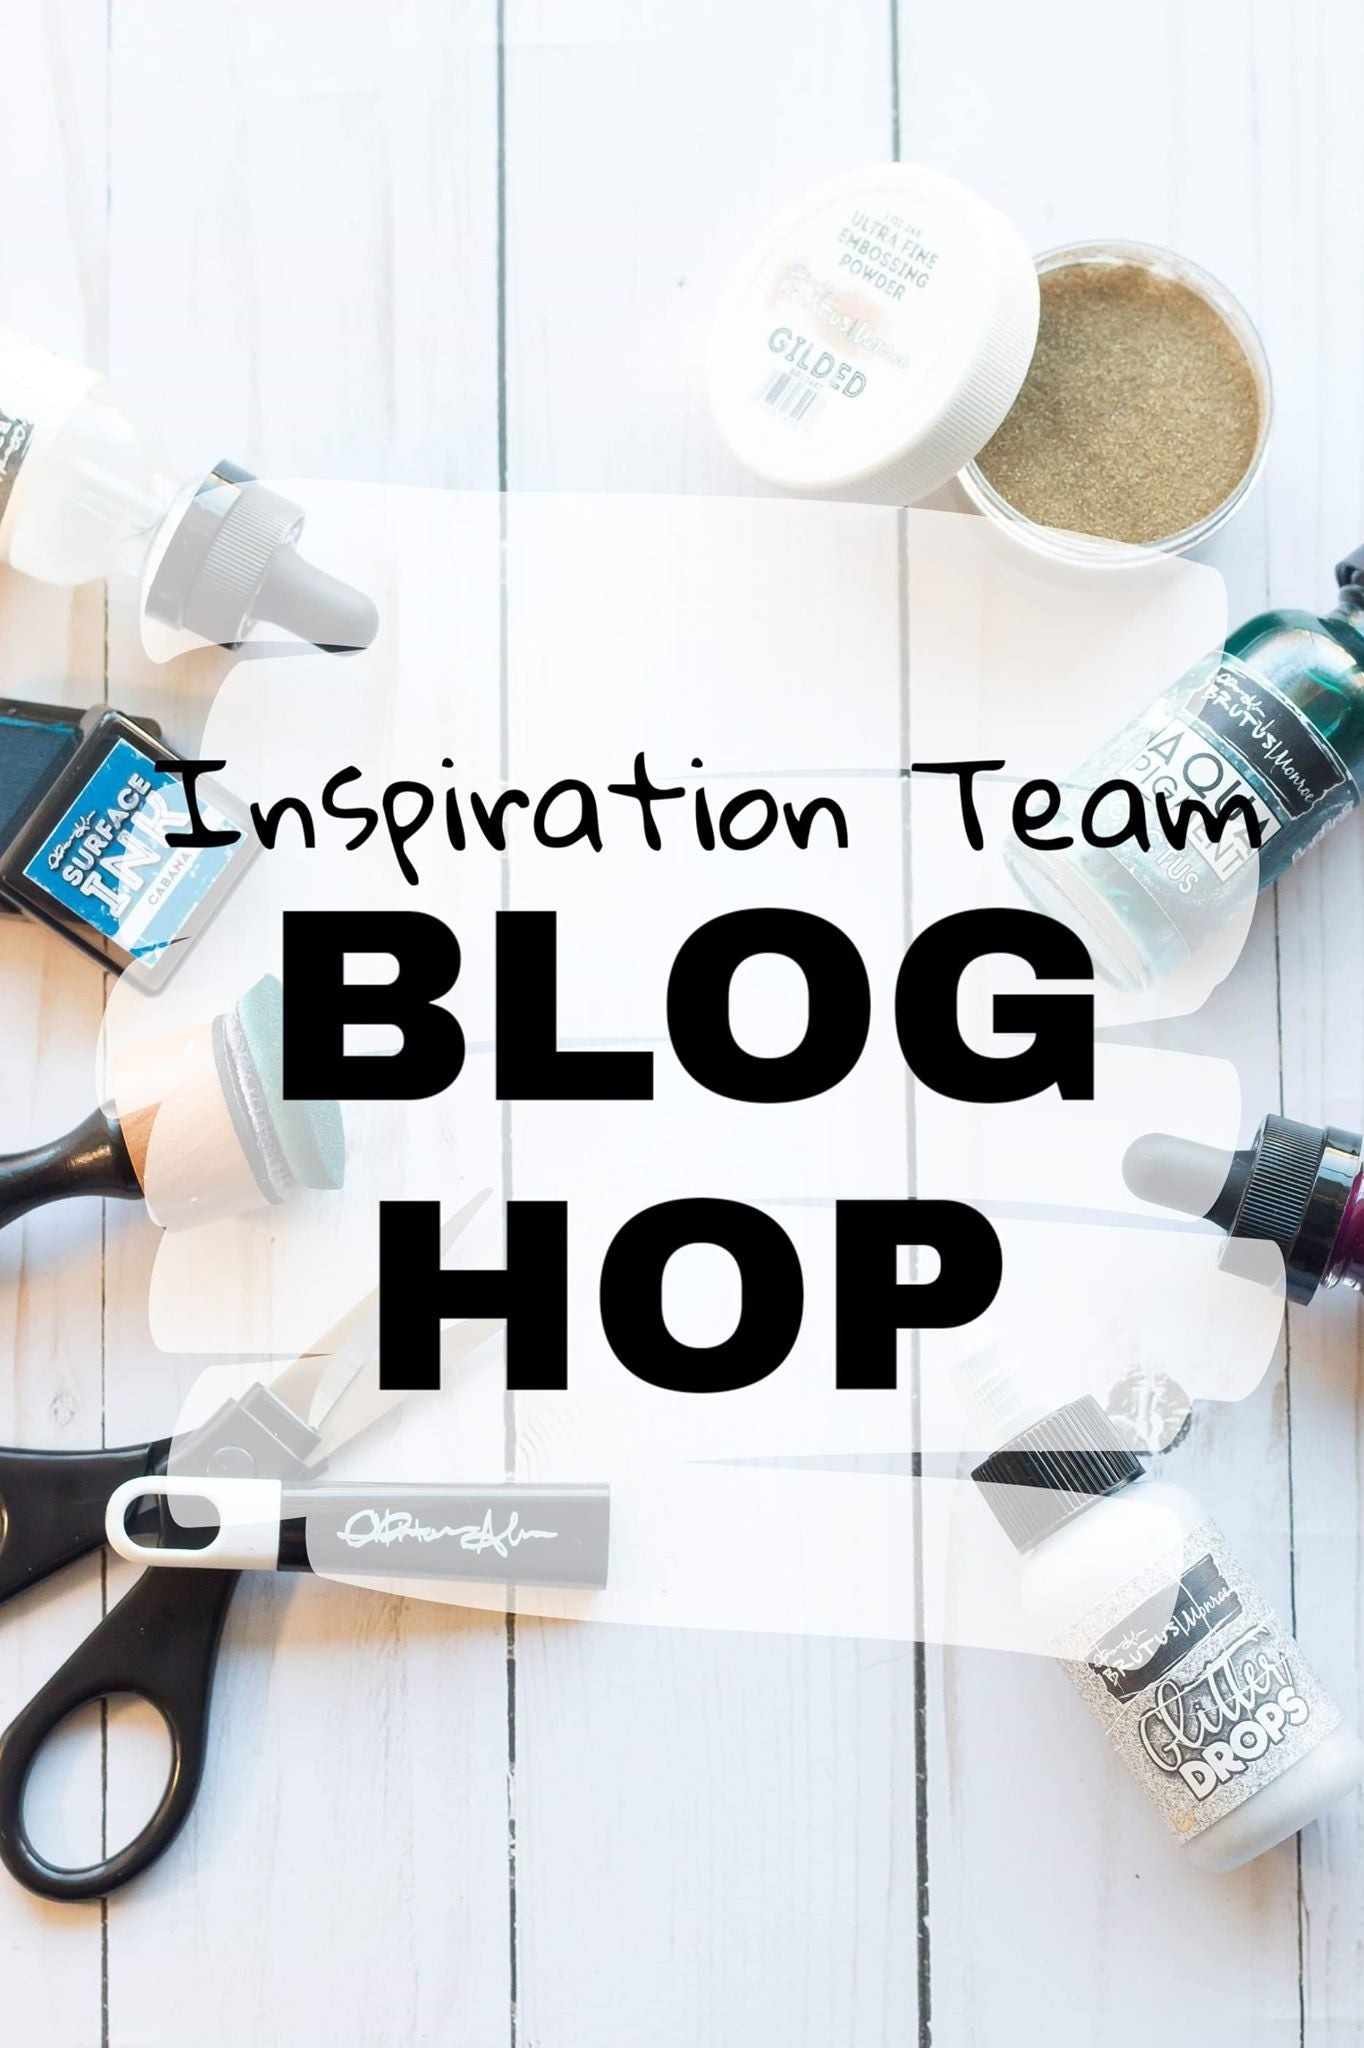 Inspiration Team Blog Hop- Anything Goes!